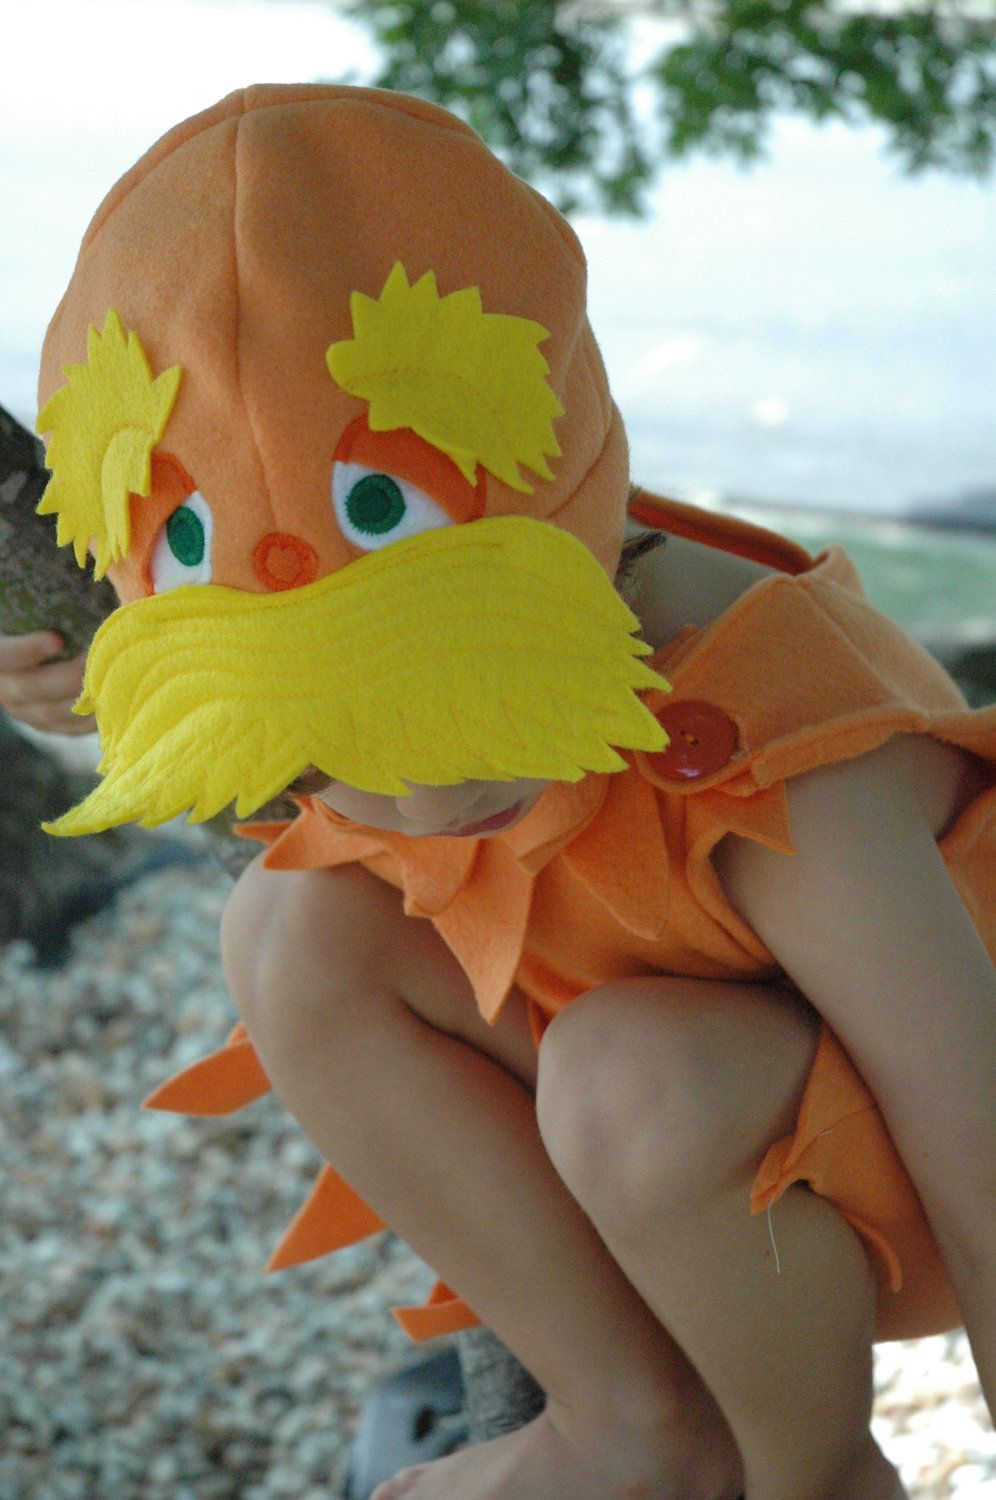 Lorax Inspired Costume Giftset - Includes Hat and Body Suit - Dr Seuss Lorax Costume - Halloween Costume - Kid Costume. $85.00, via Etsy. #provestra